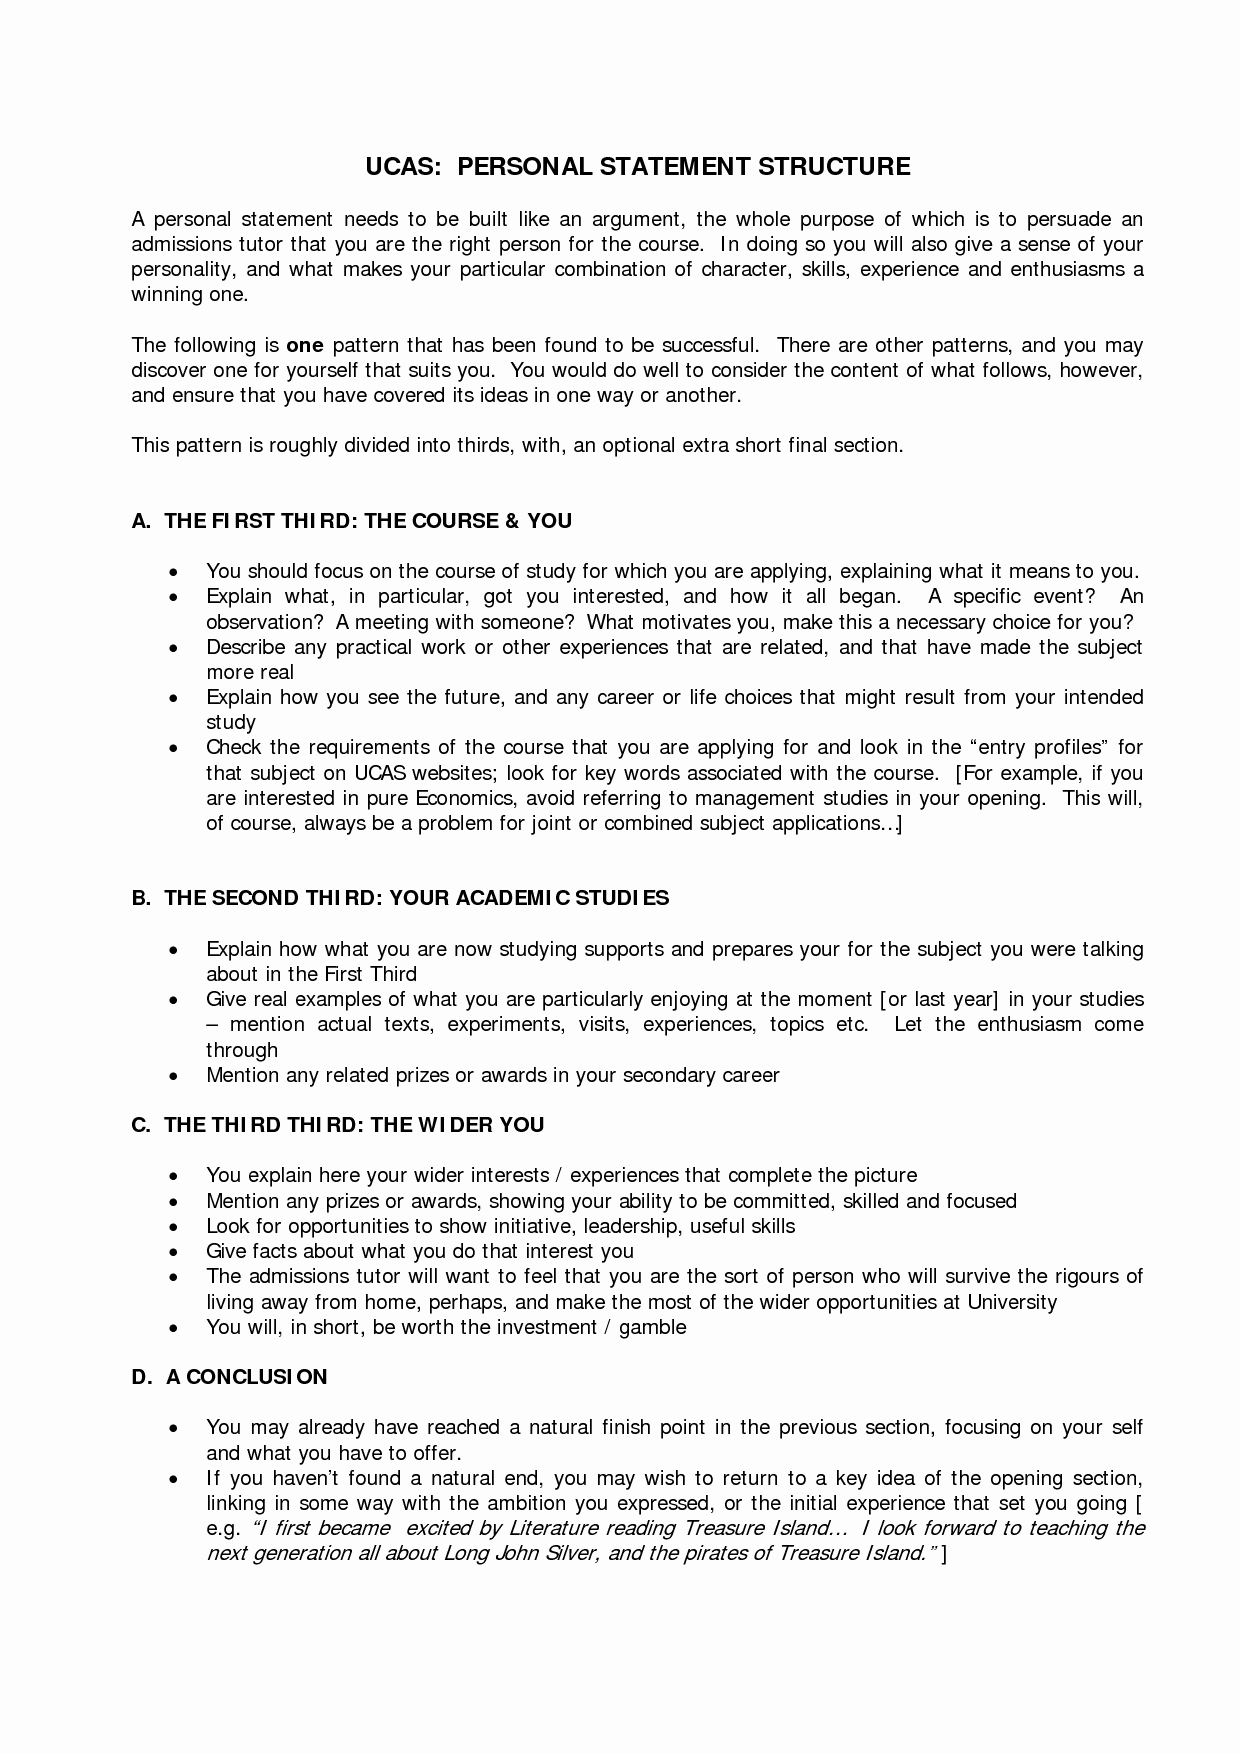 Academic Personal Statement Example Unique Personal Statement Template Ucas Google Search